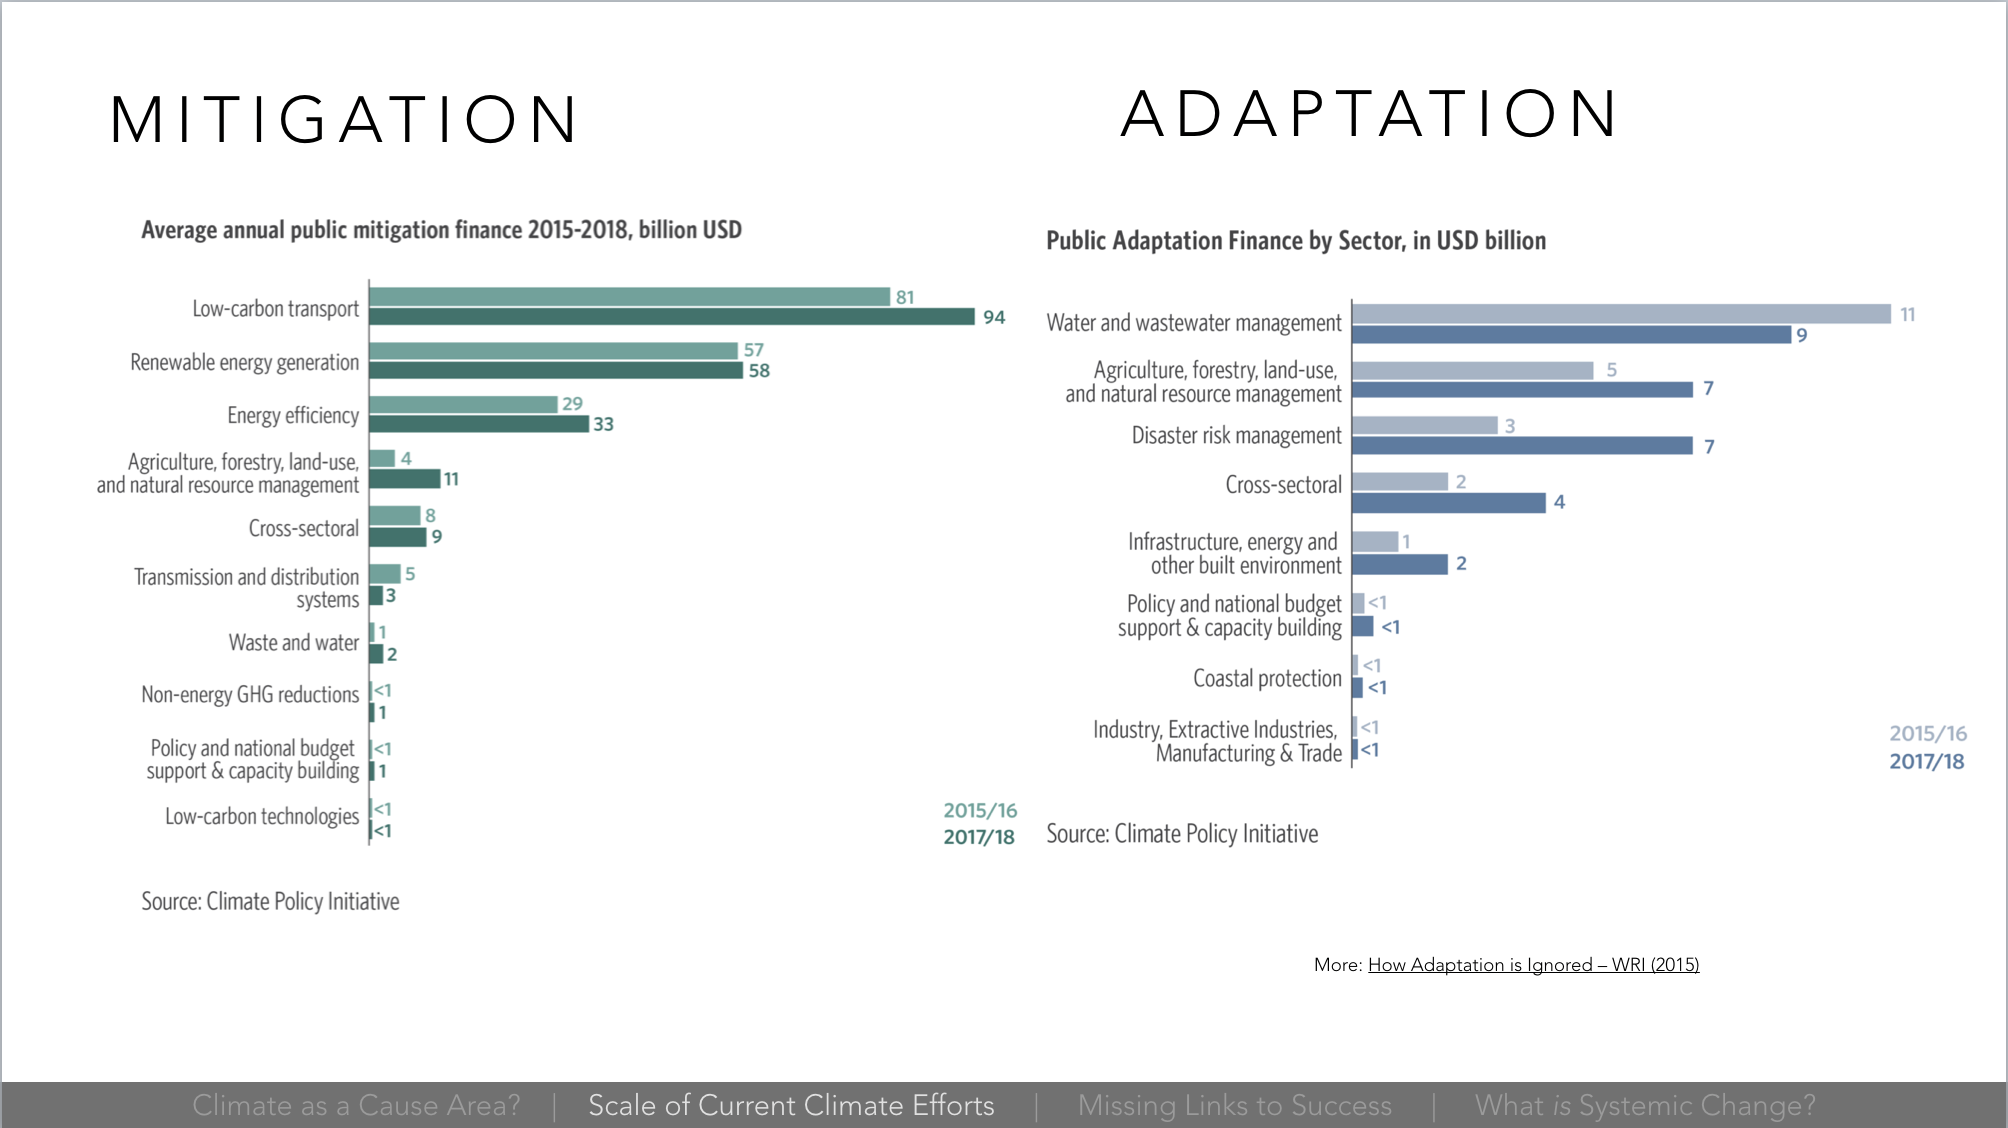 Image showing more money goes to climate mitigation than adaptation